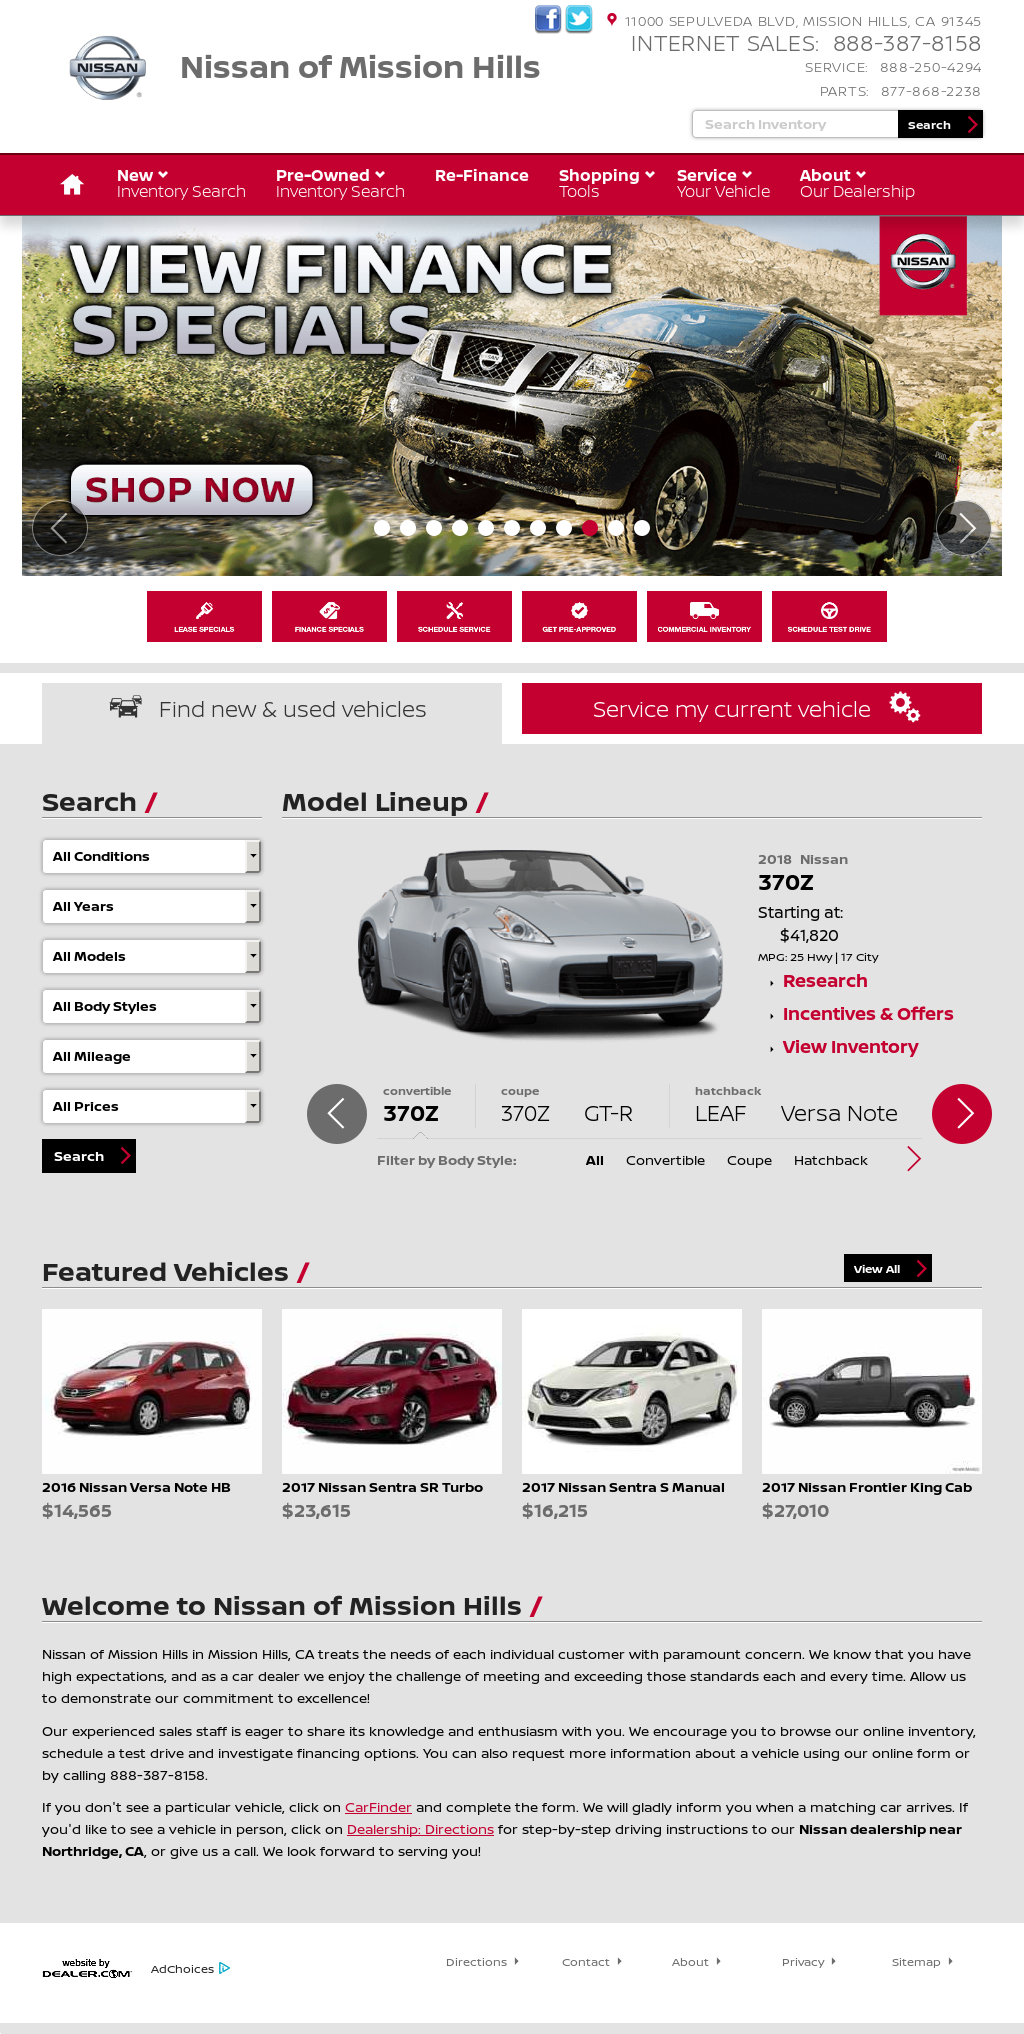 Nissan Of Mission Hills Website History